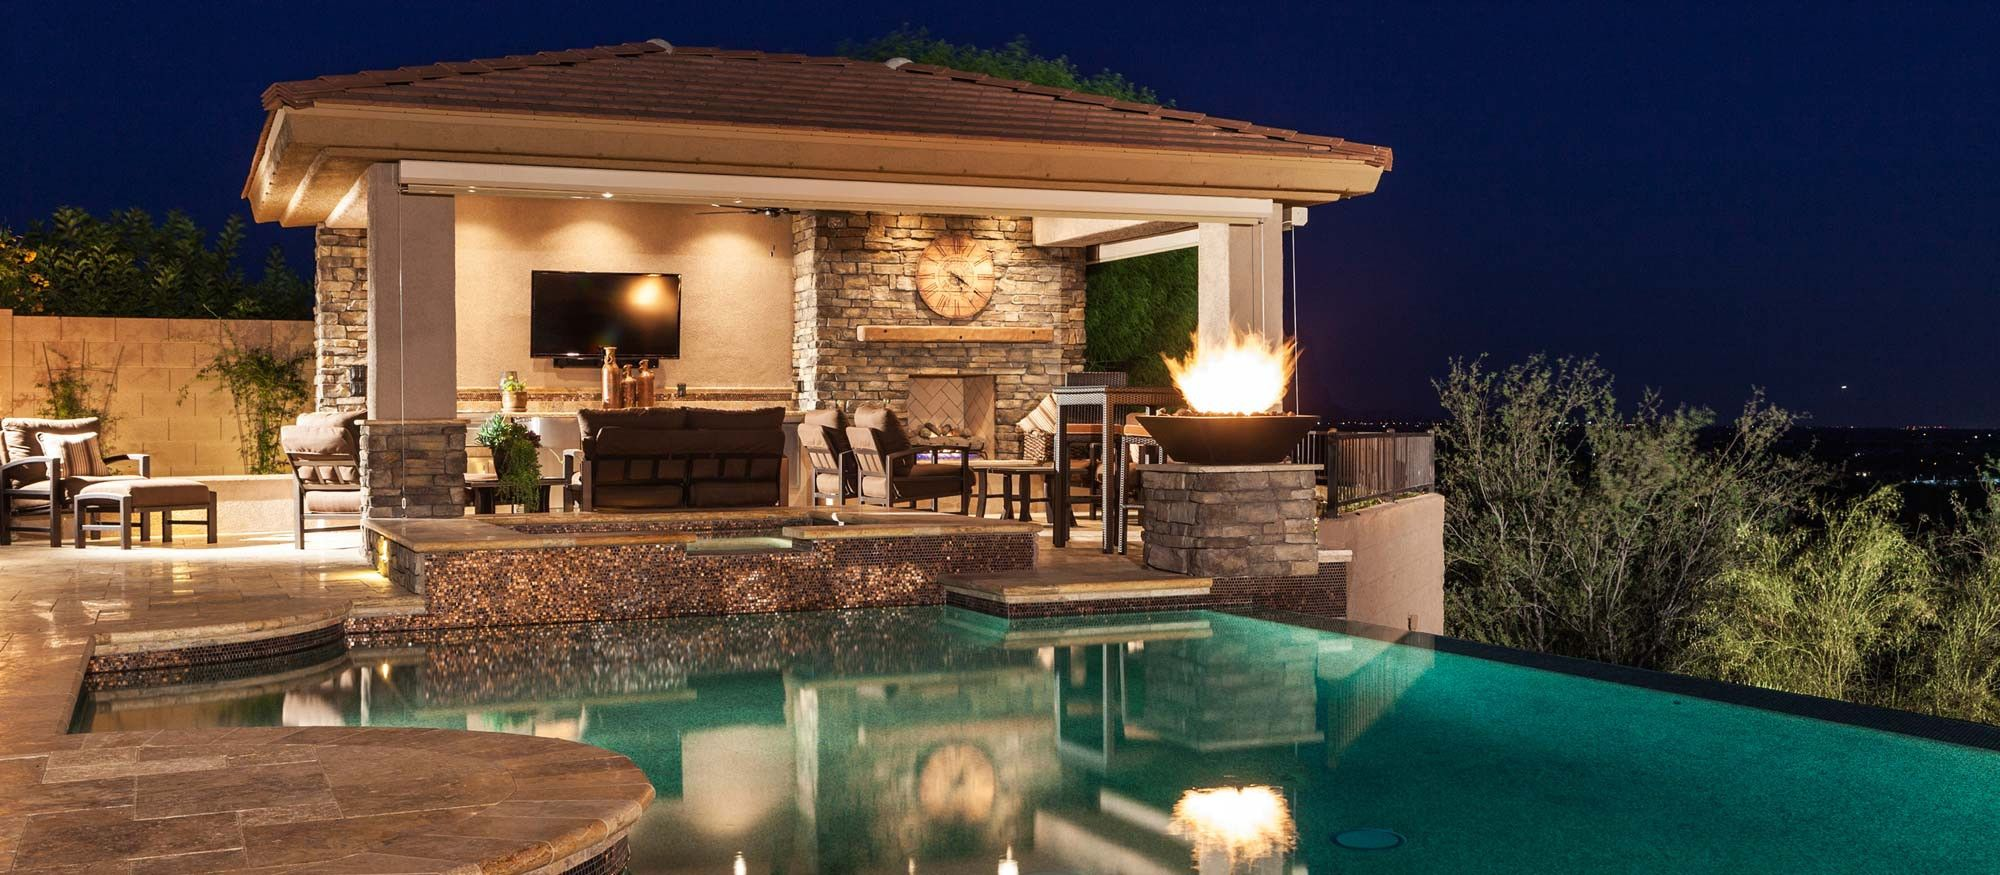 Pool with Outdoor Kitchen Design